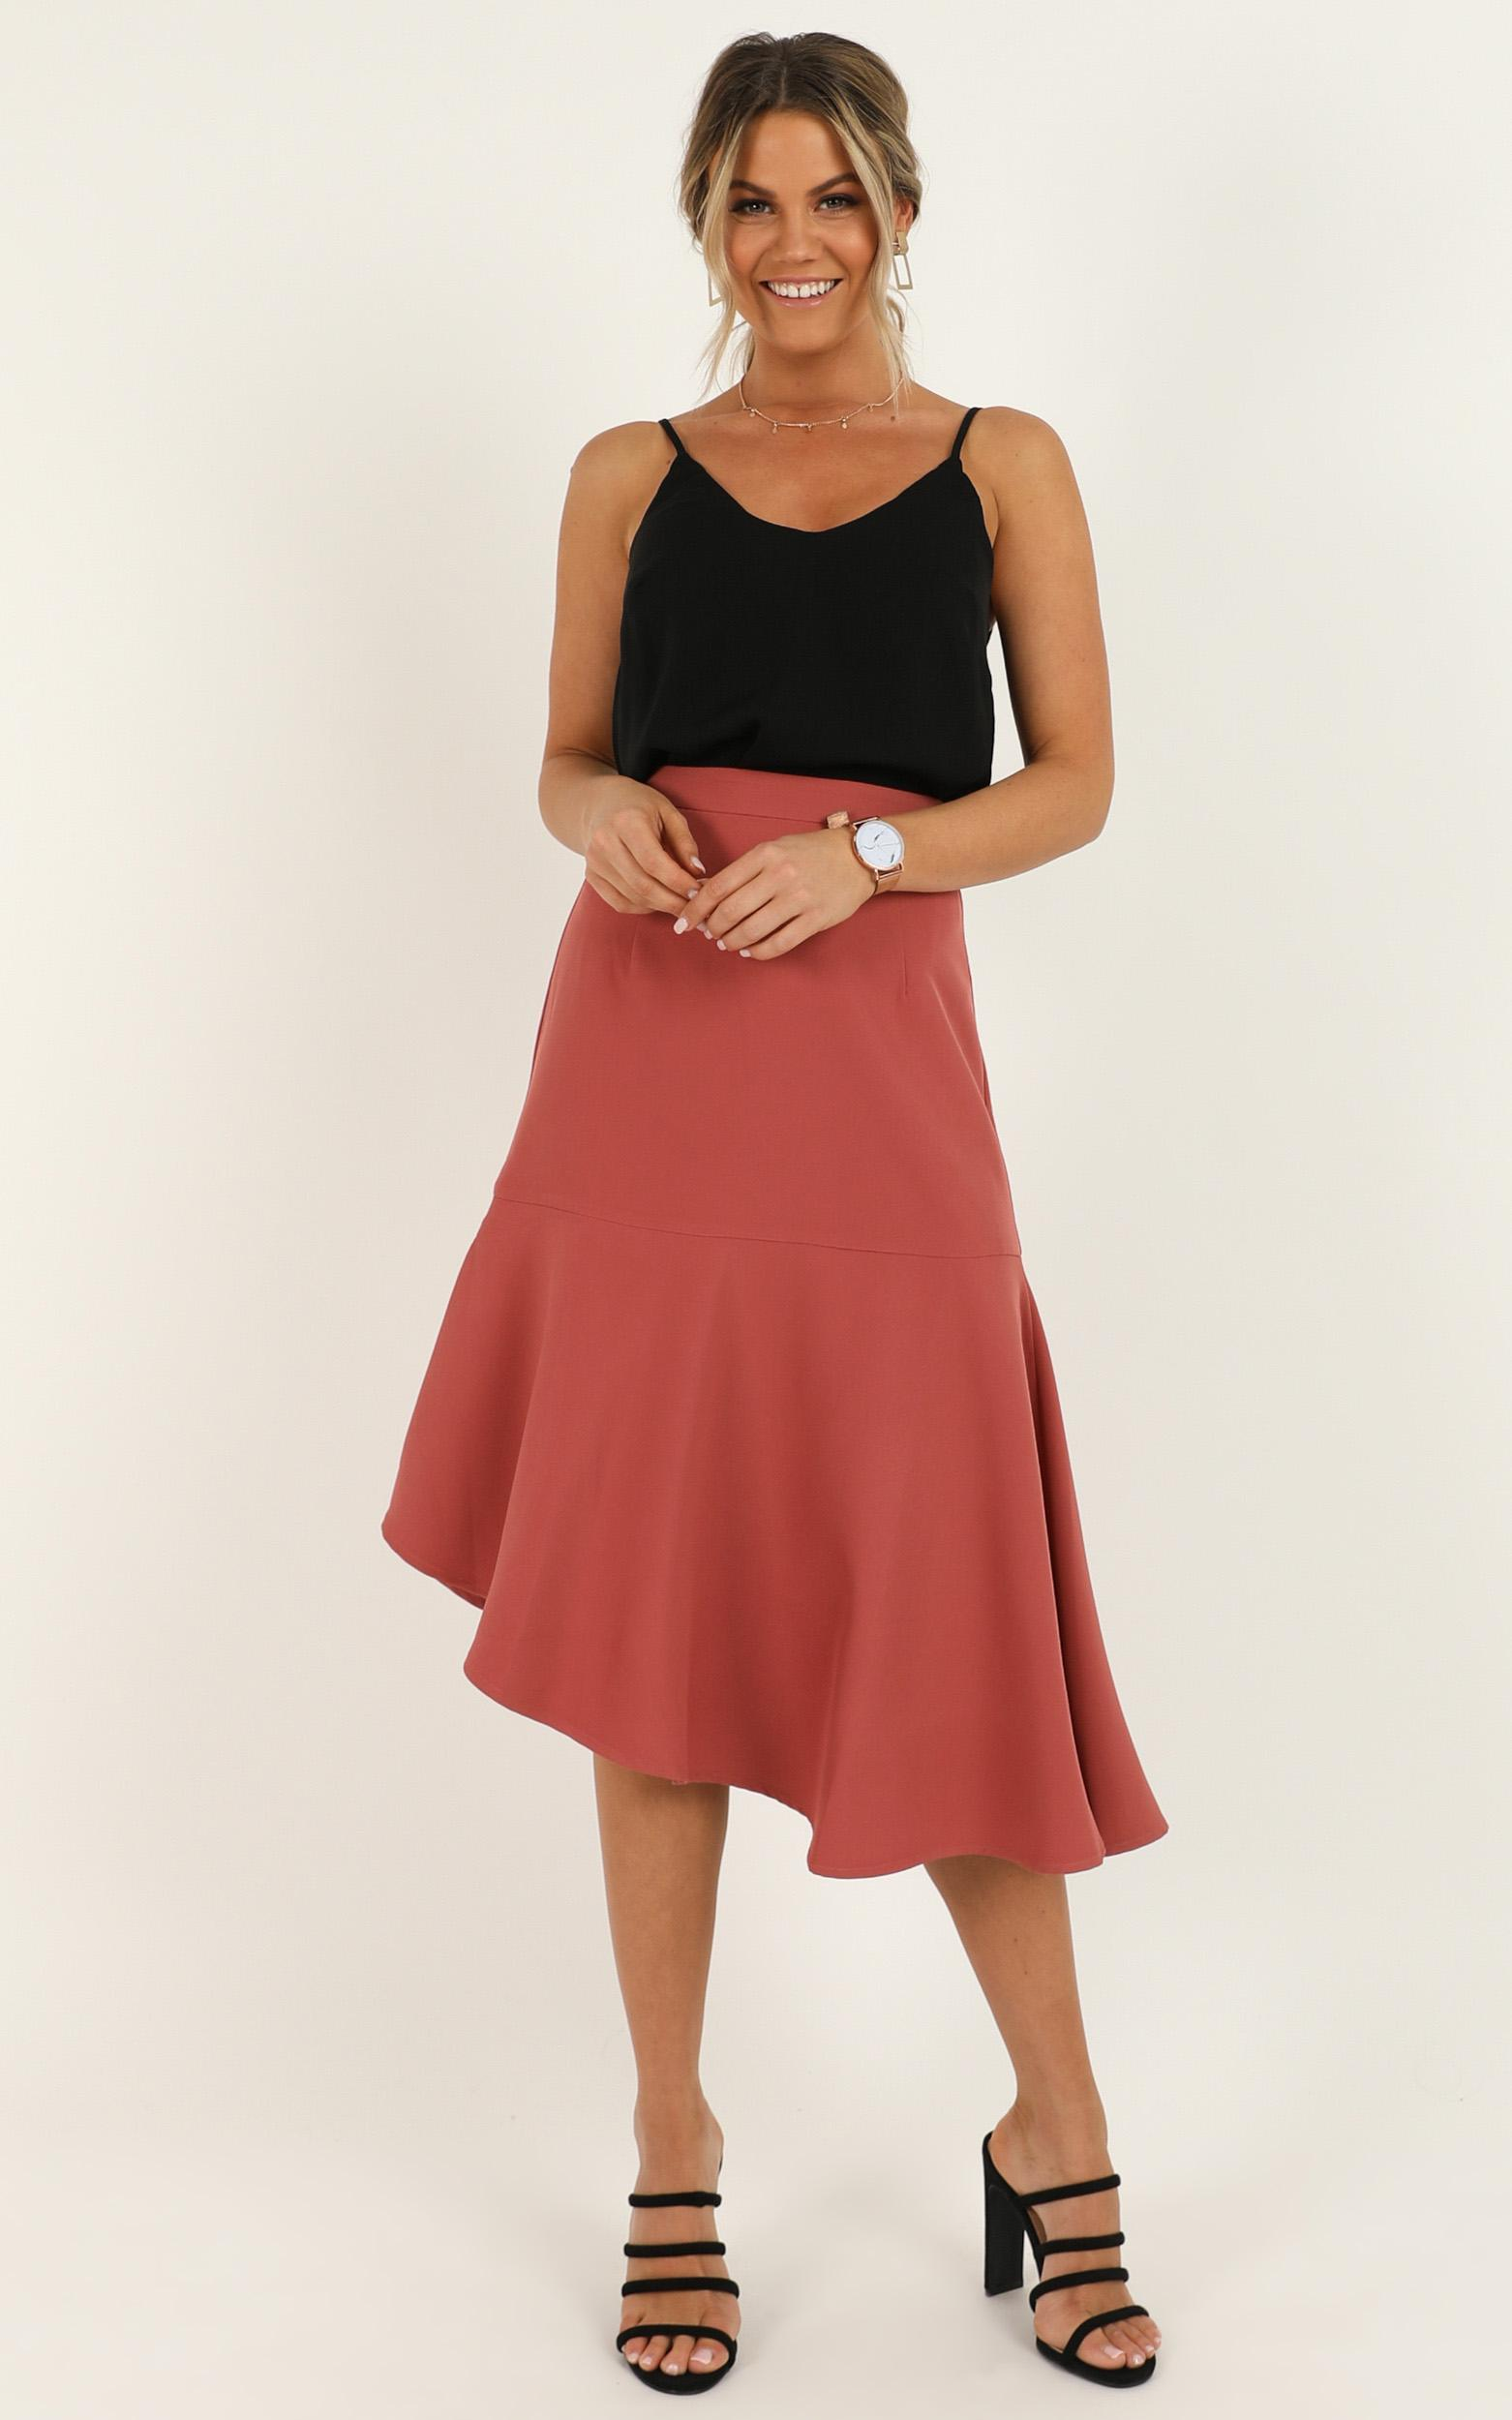 Mentor Goals Skirt in dusty rose - 20 (XXXXL), Pink, hi-res image number null